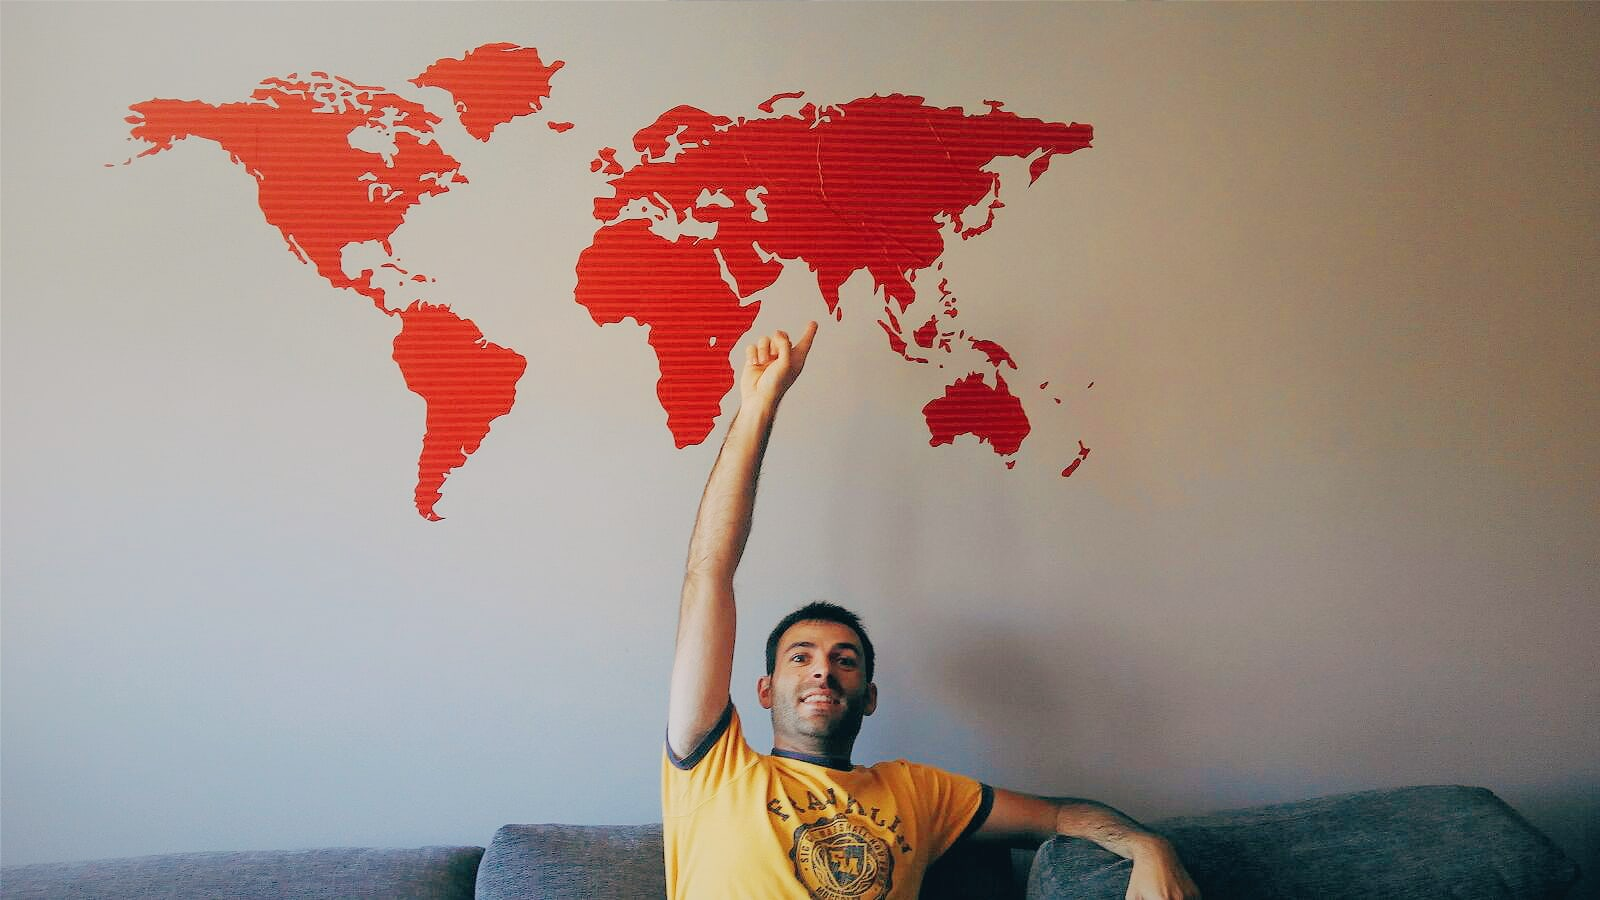 Gamintraveler with the world map.